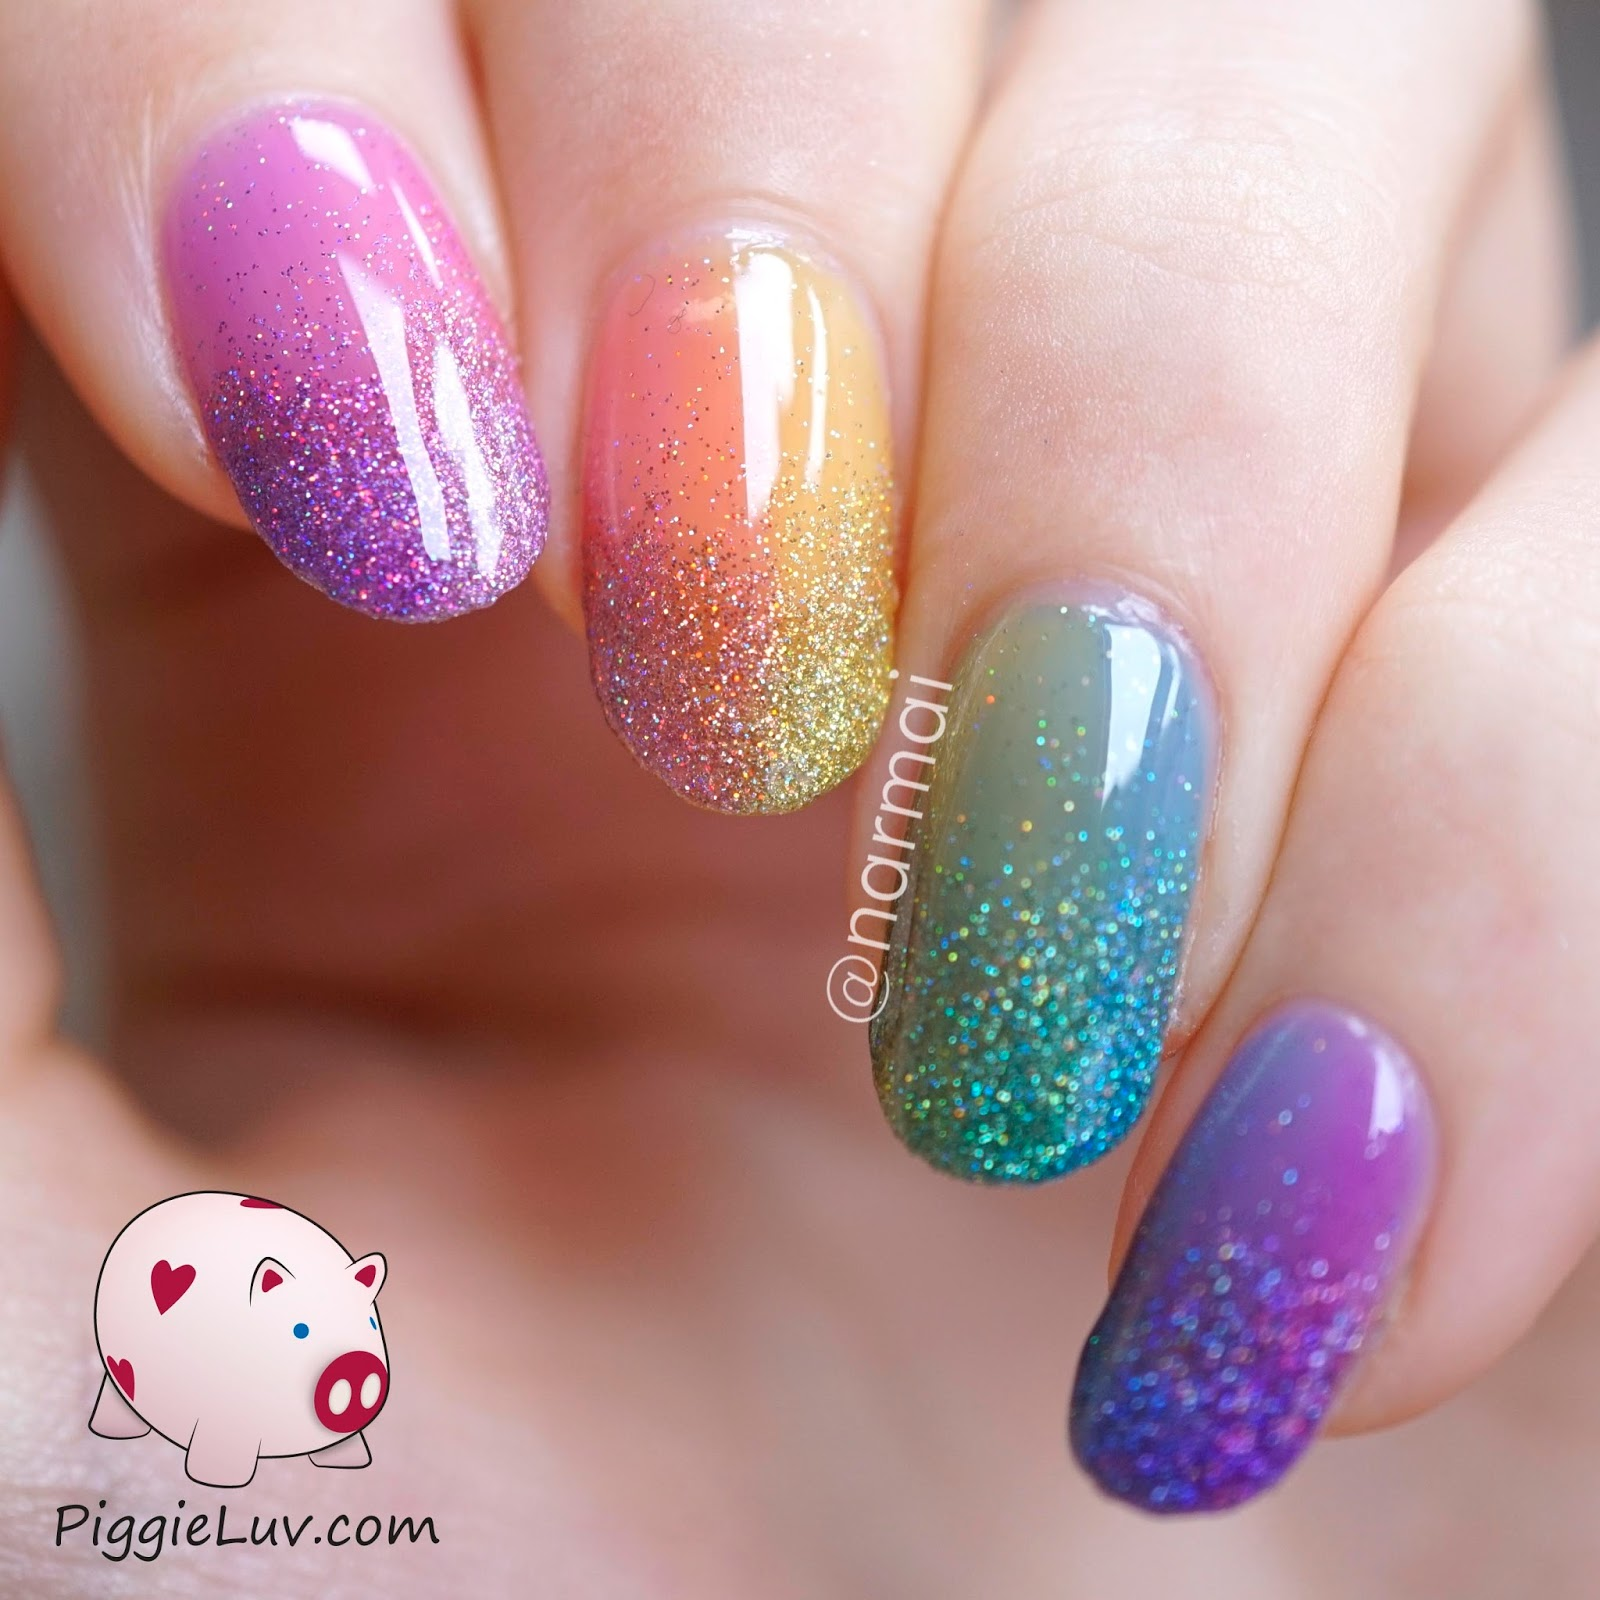 PiggieLuv: Double Gradient Glitter Rainbow Nail Art With